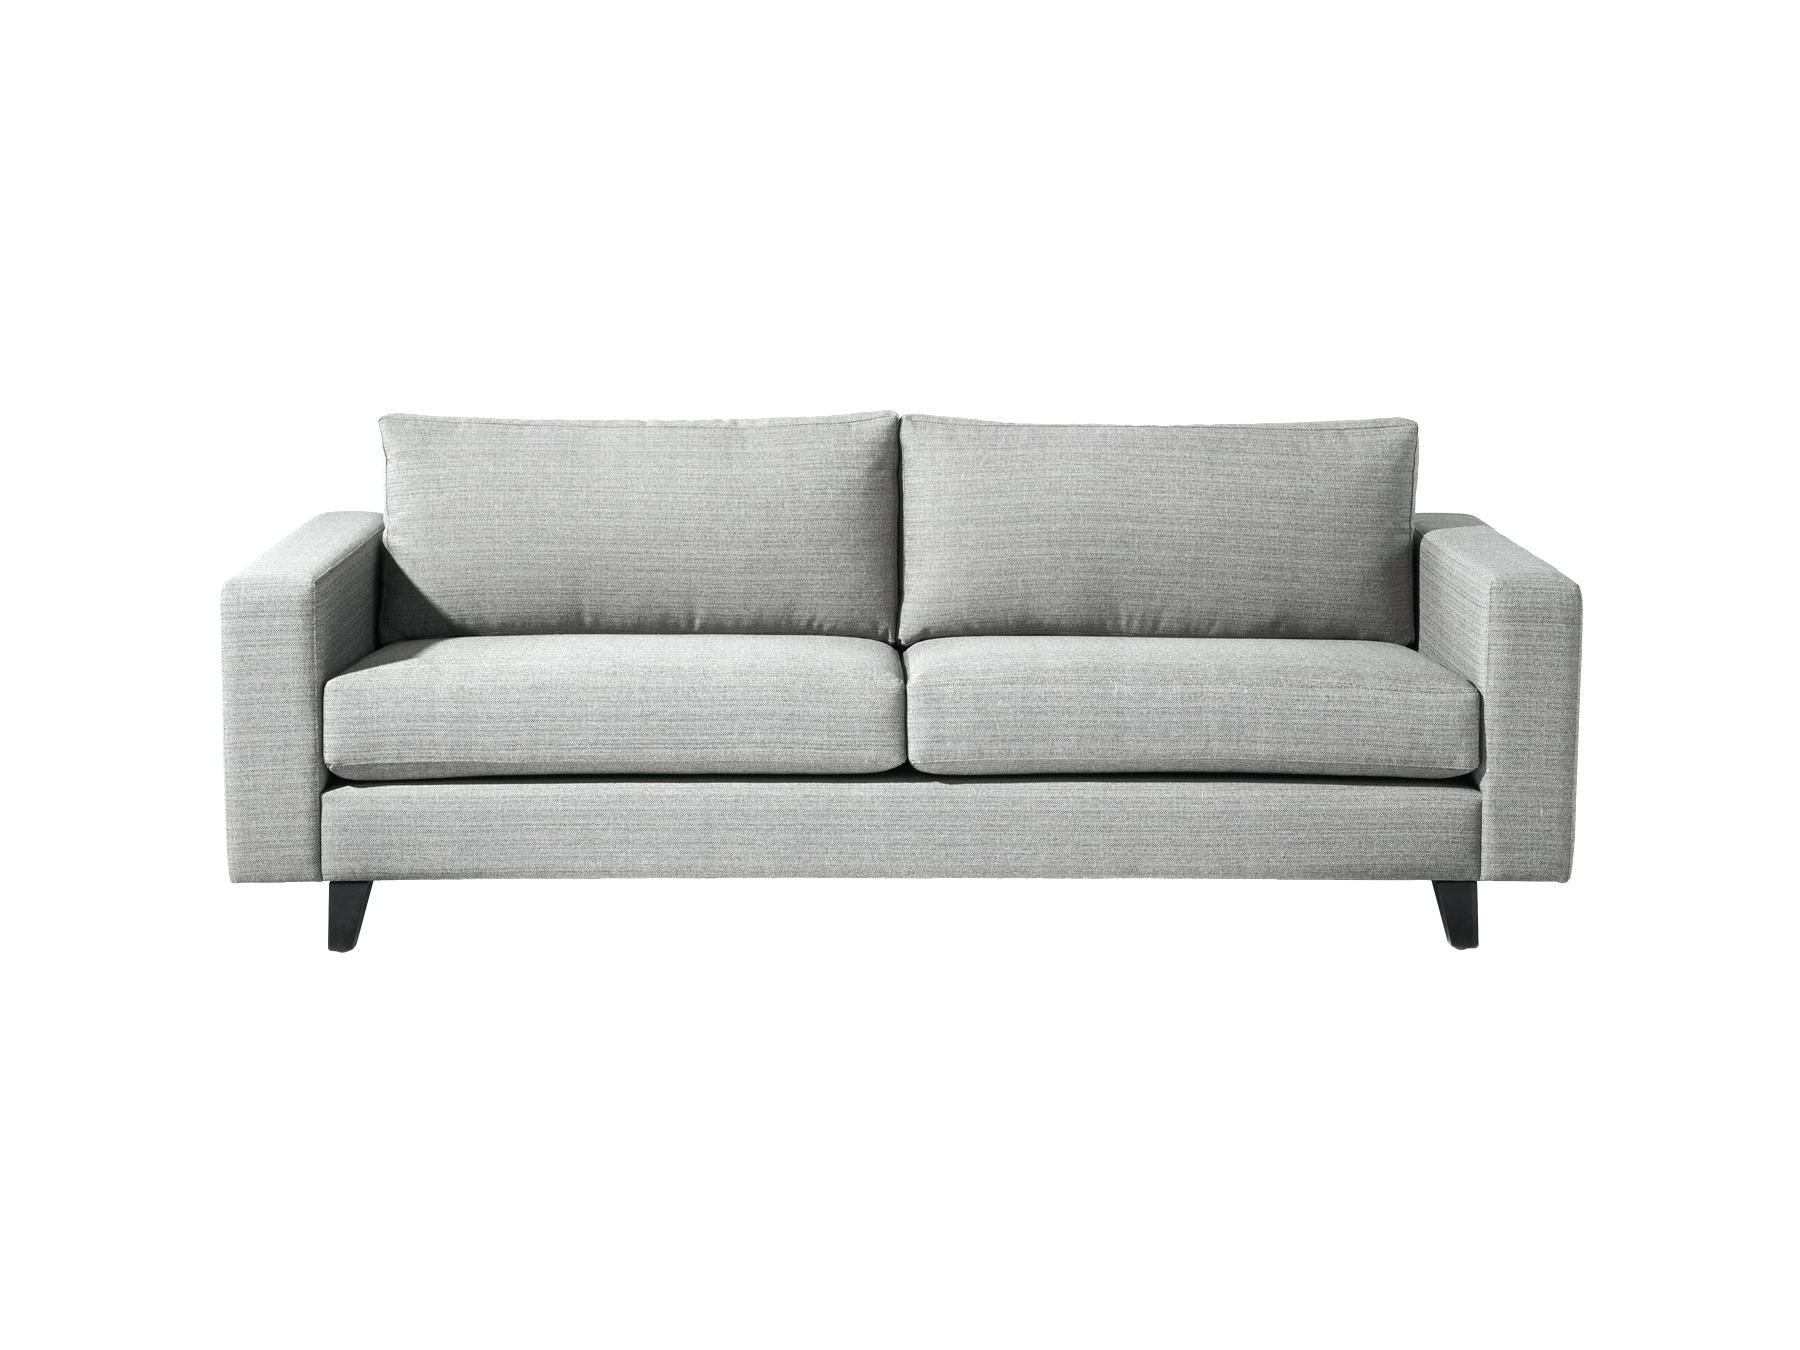 Jordans Sectional Sofas regarding Well-liked Jordans Furniture Couches Sectional Sofawolf And – 4Parkar